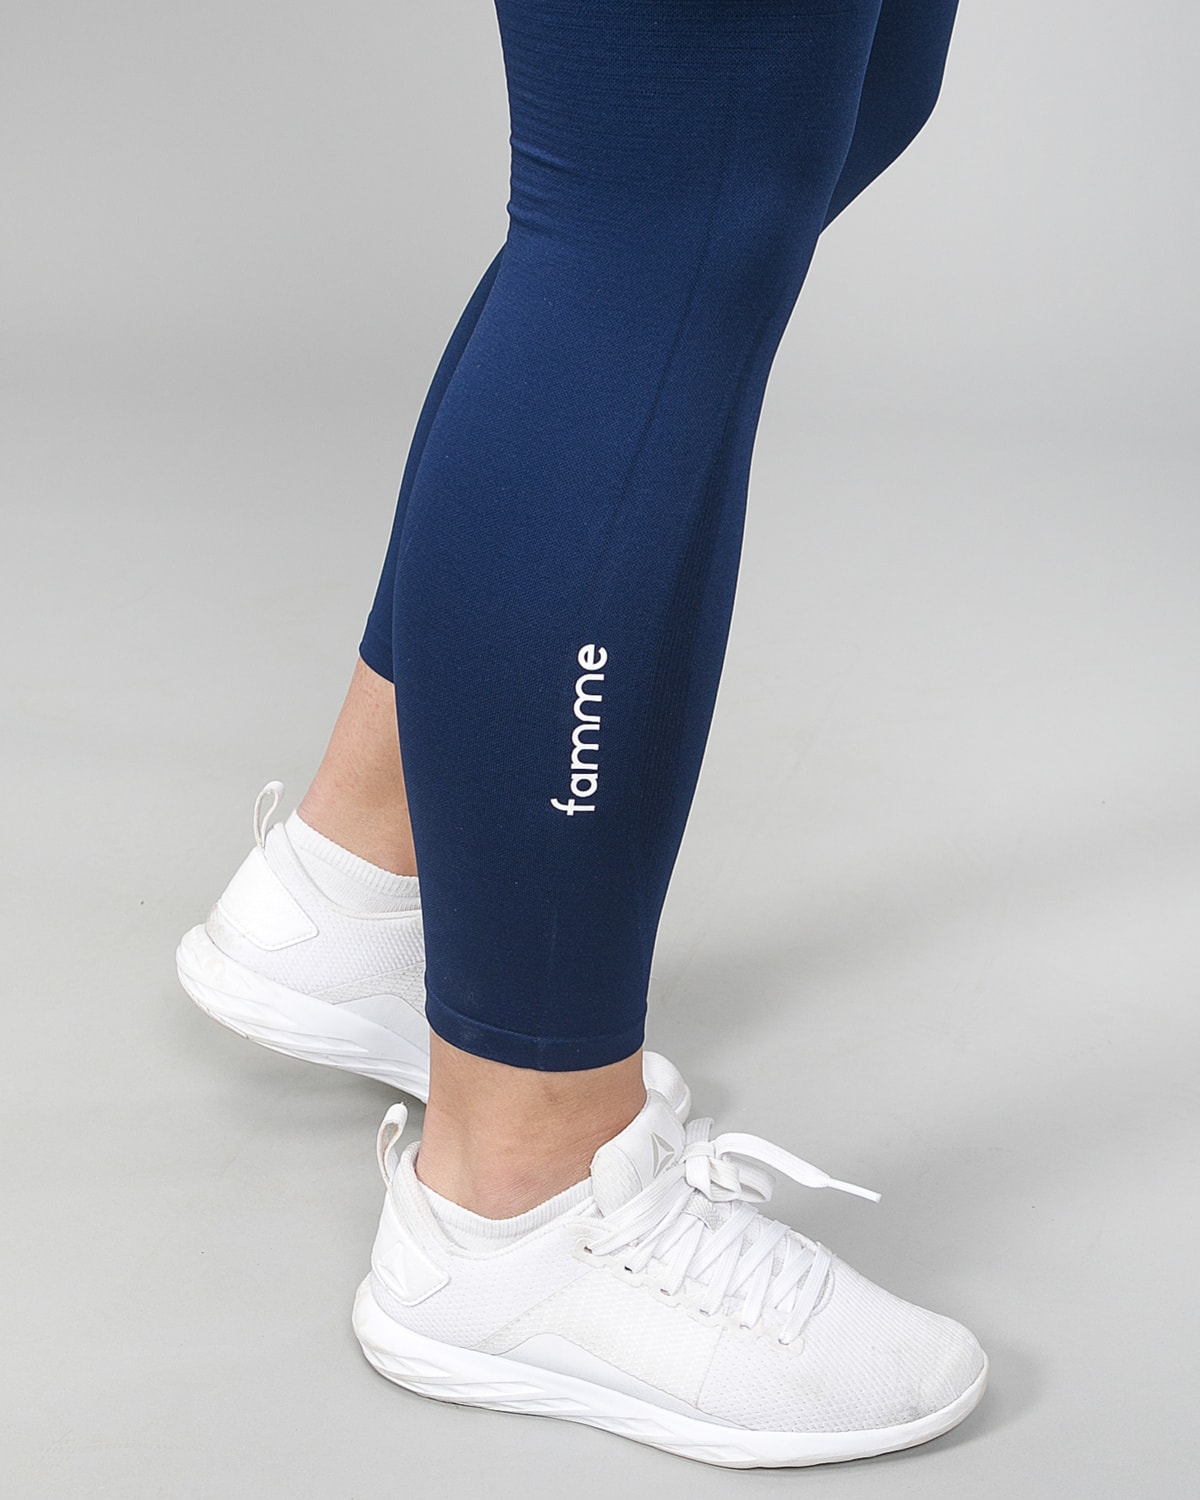 Famme Vortex Legging – Navy Blue vhwl-nv f